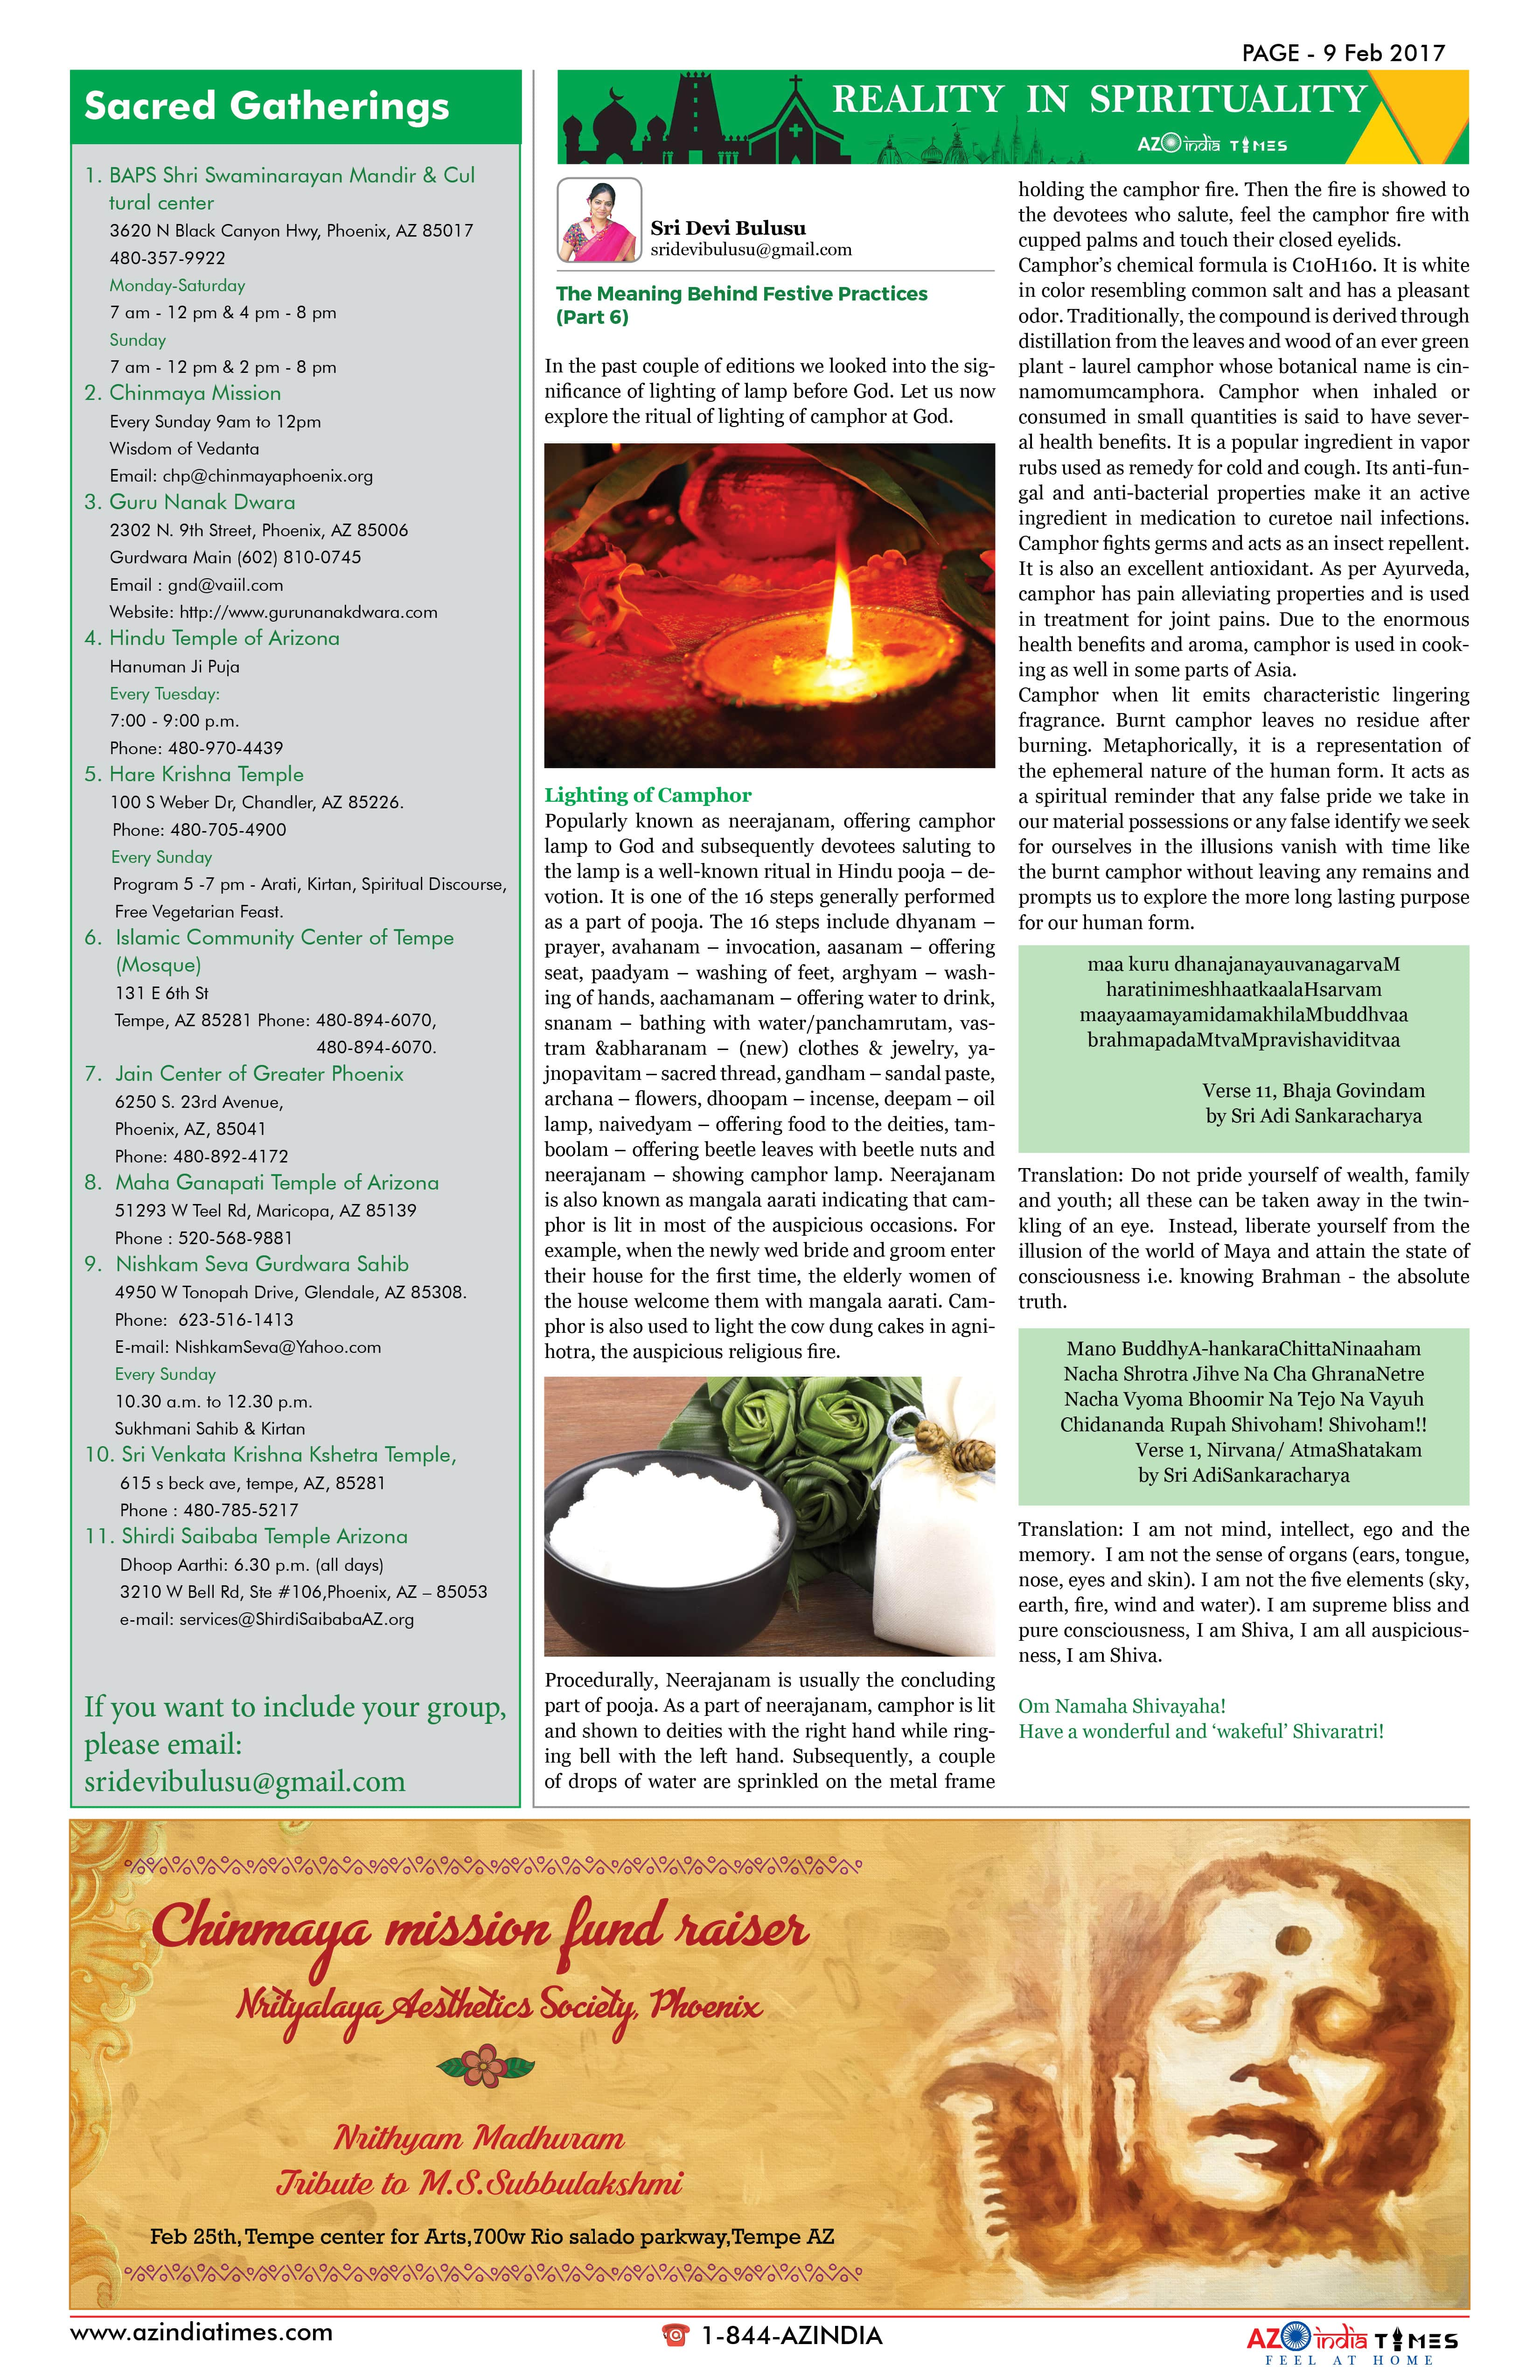 FEBRUARY EDITION-9